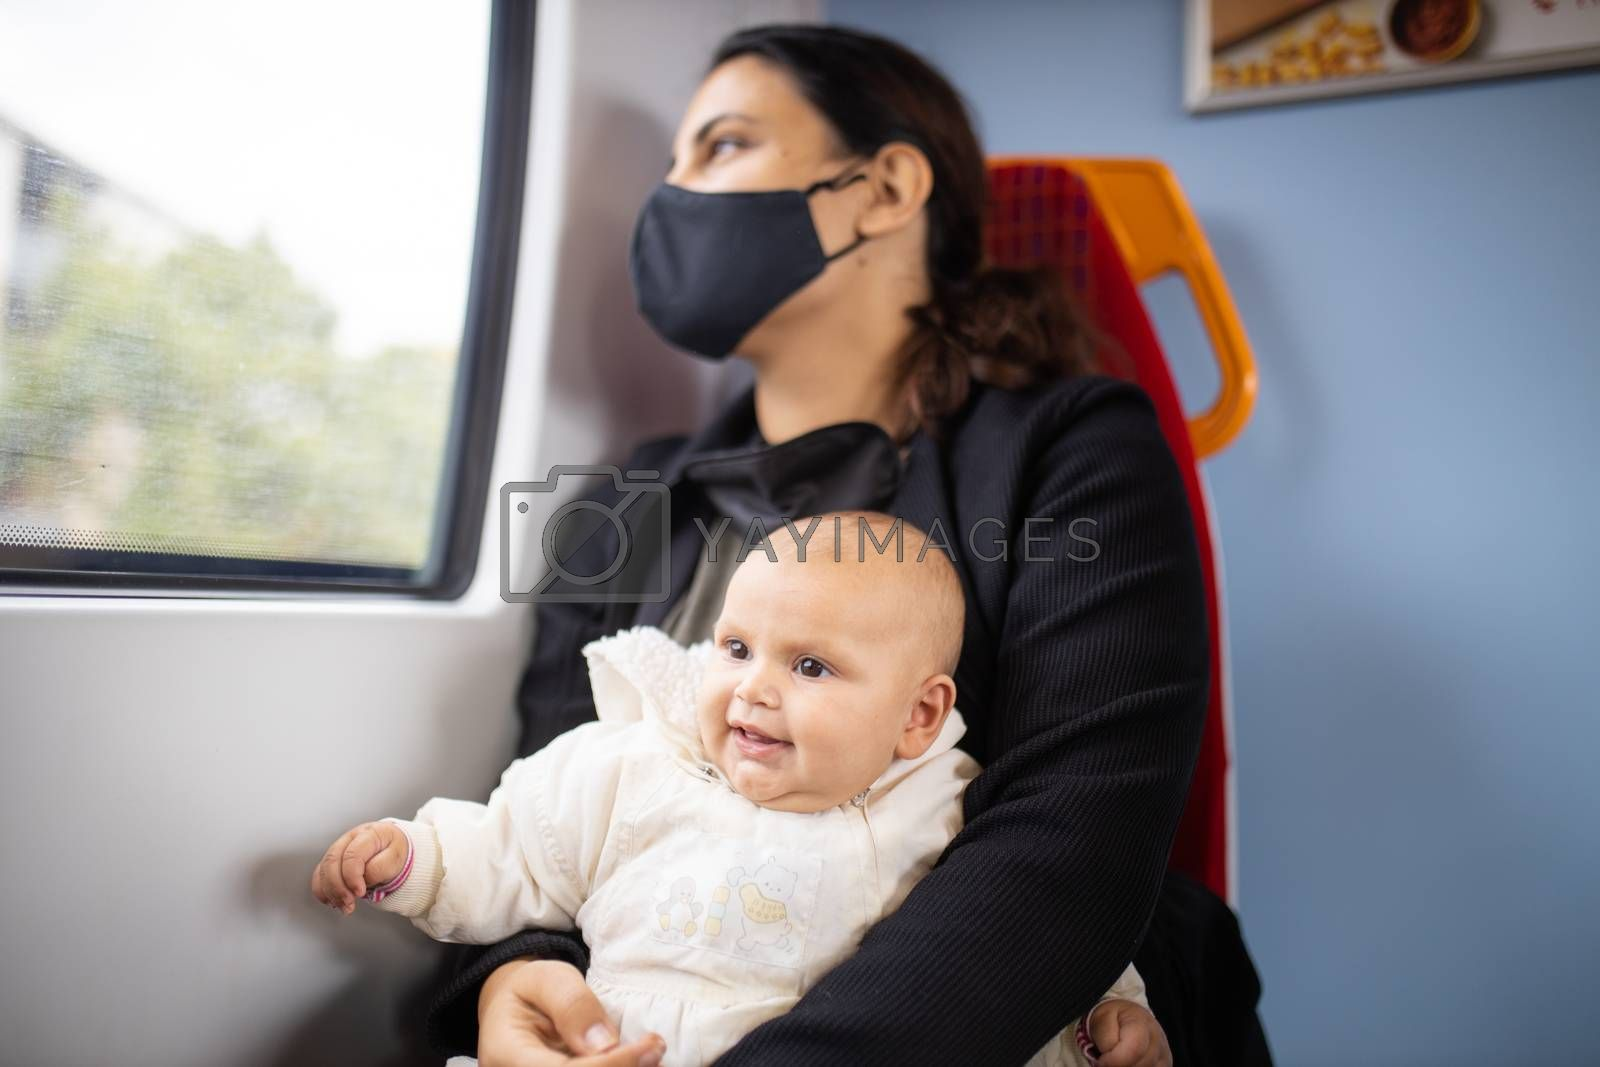 Woman wearing a face mask and black clothes and looking through the window of a train as she holds her smiling baby